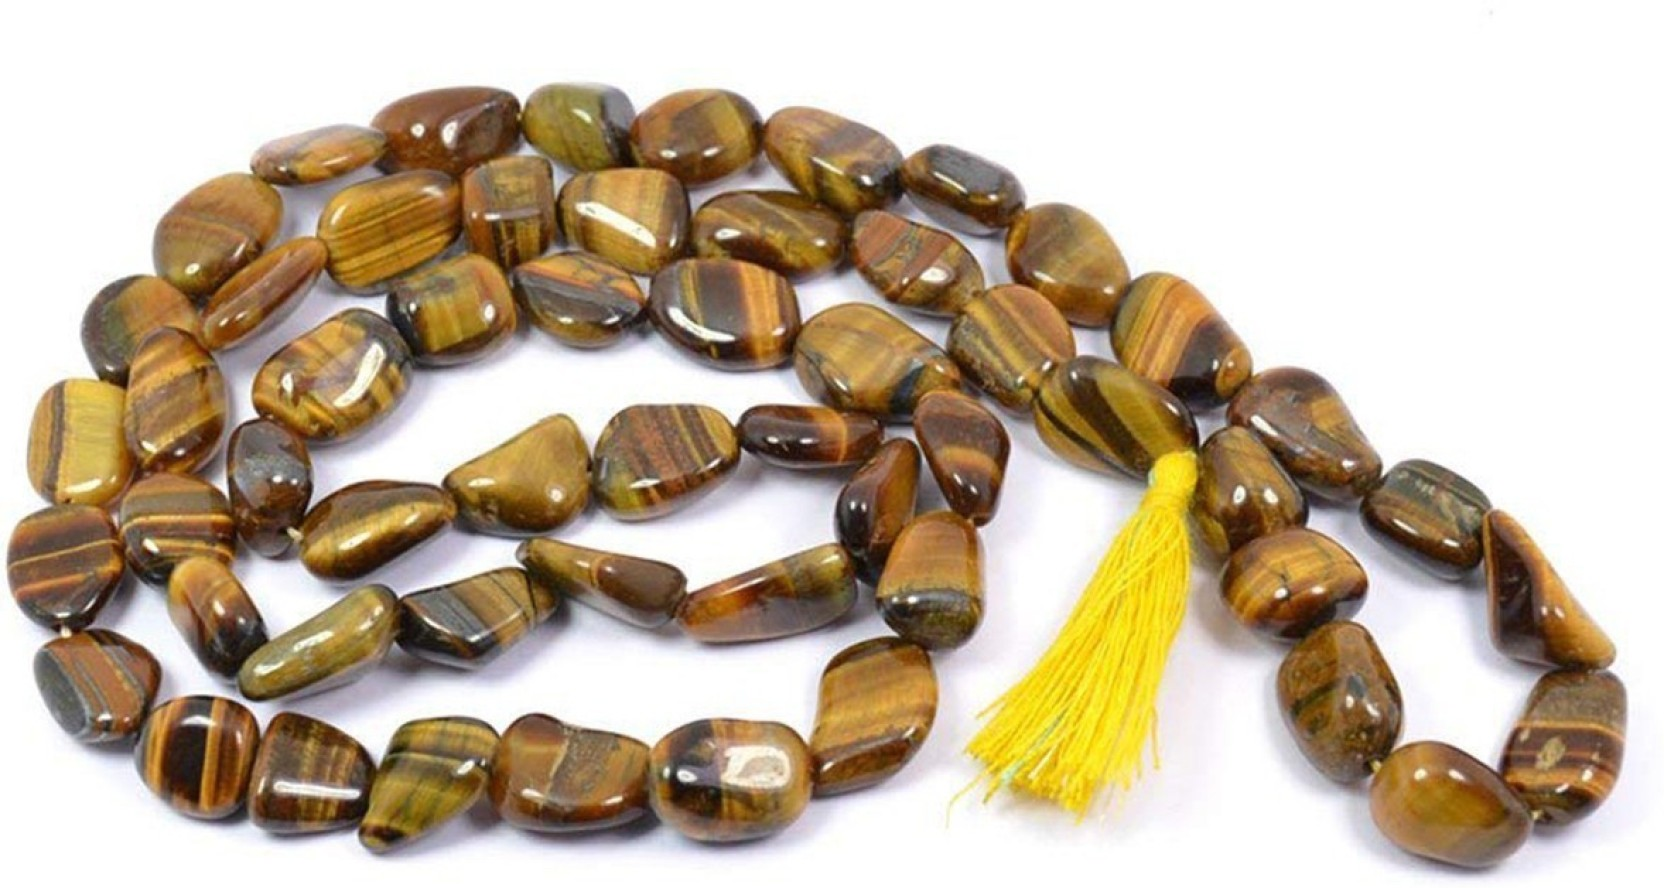 Know About The Price & Benefits Of Tiger Eye Stone